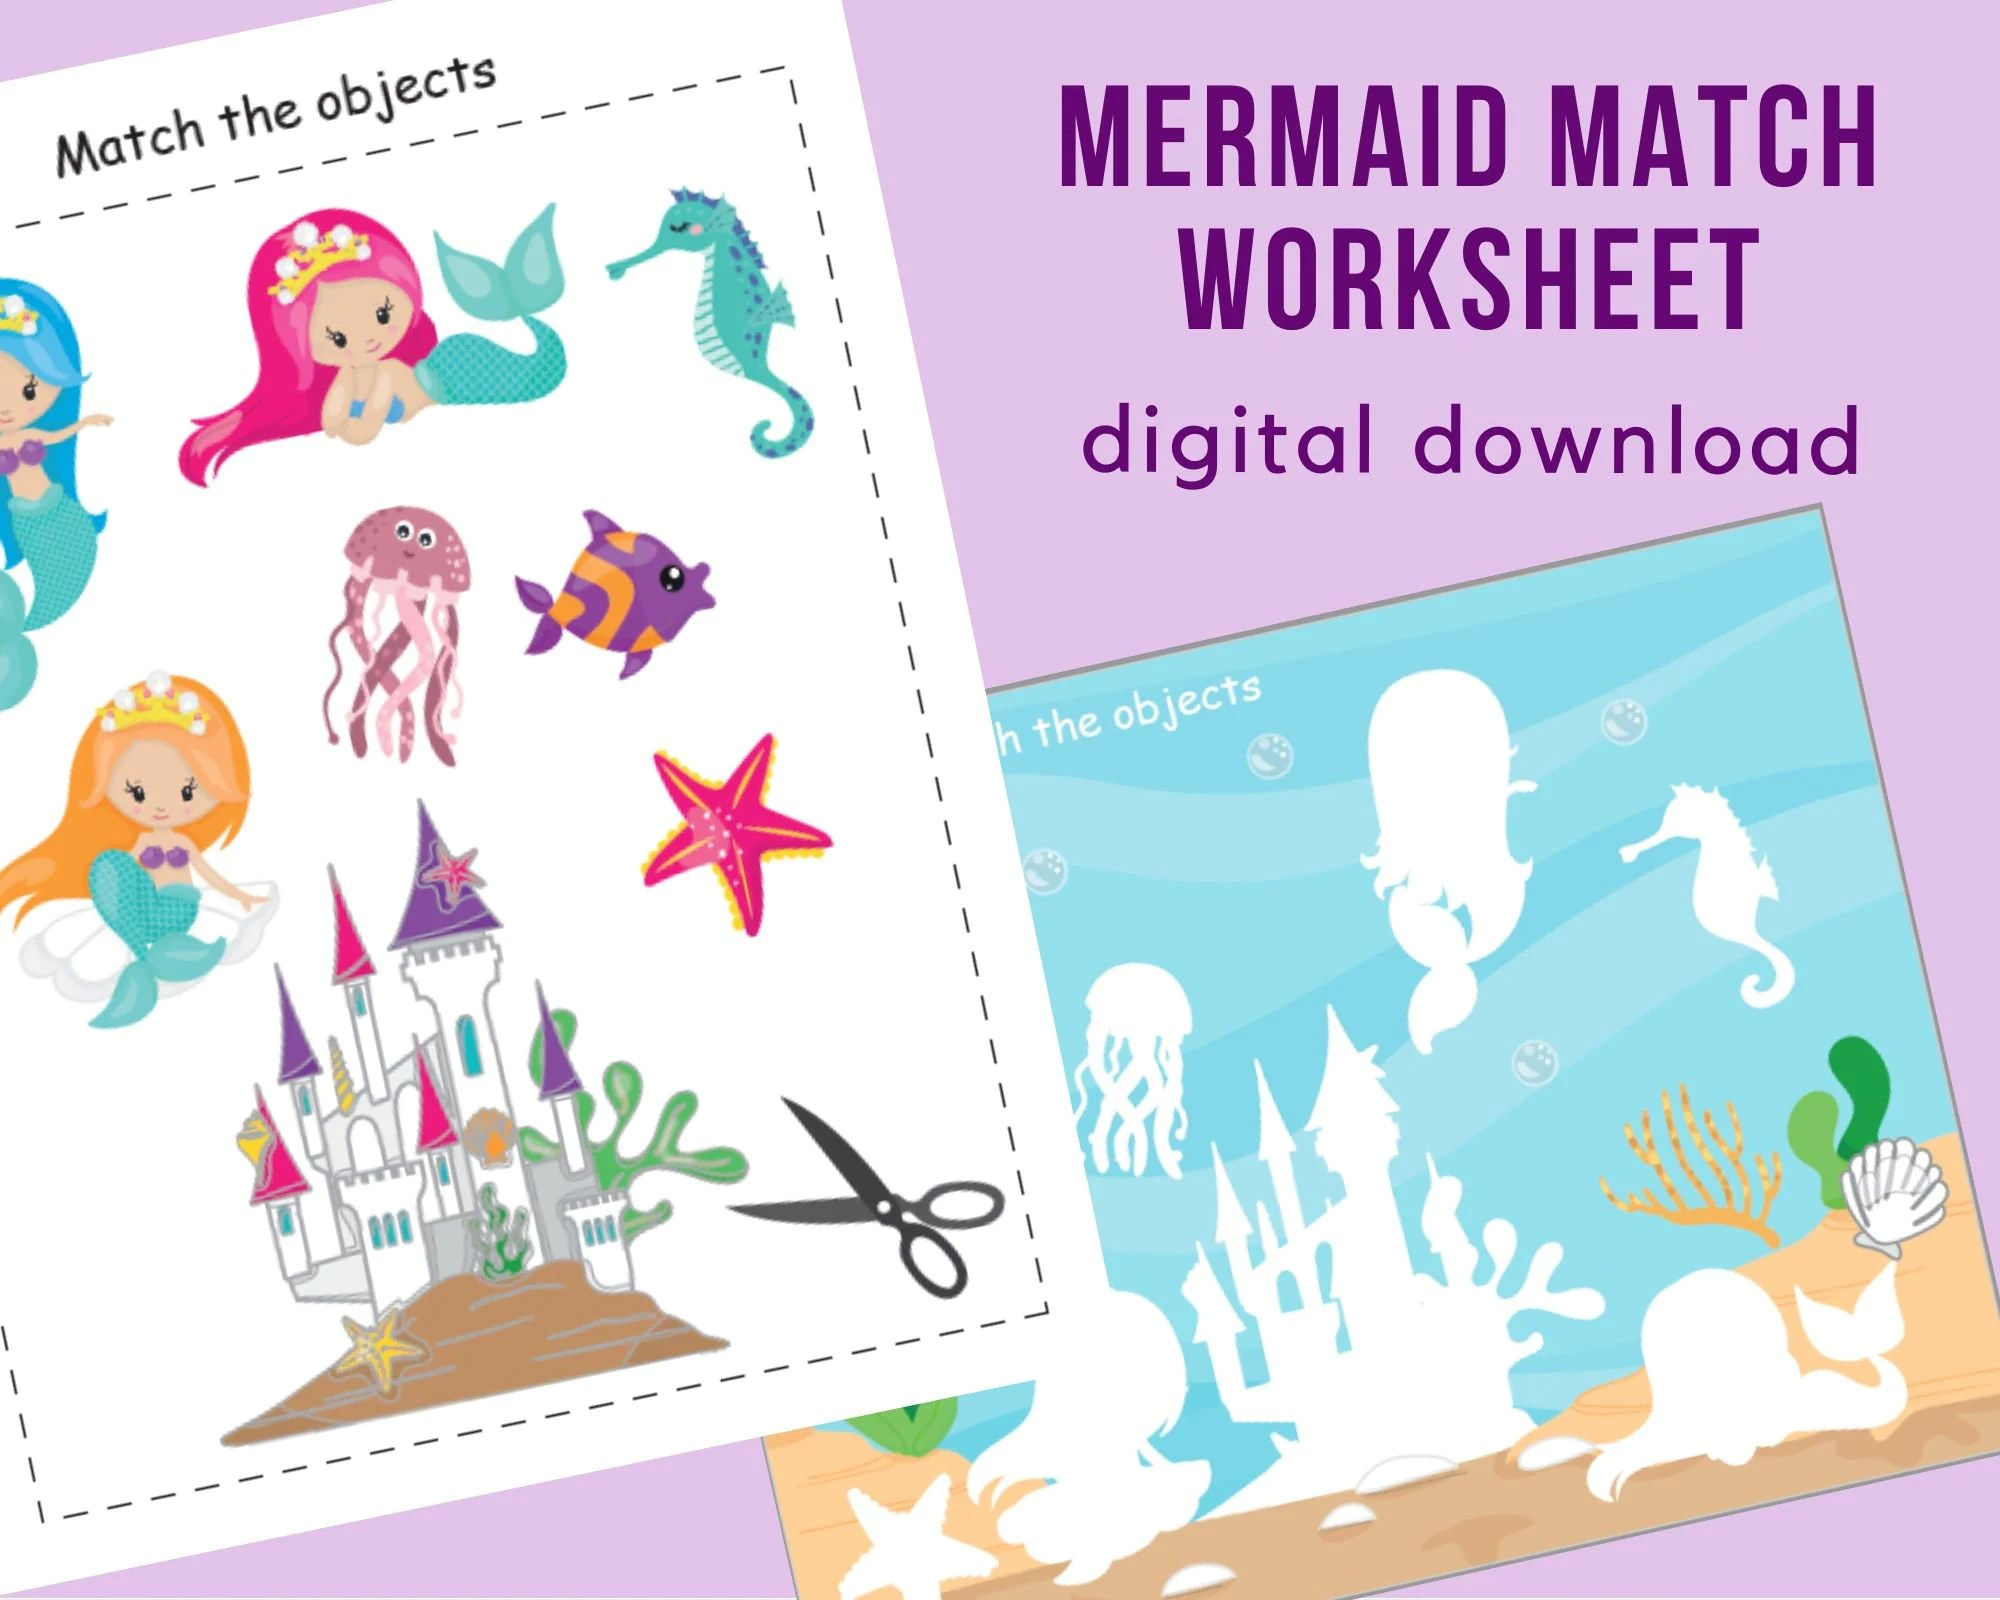 Mermaid Match Worksheet Printable Busy Book For Toddler